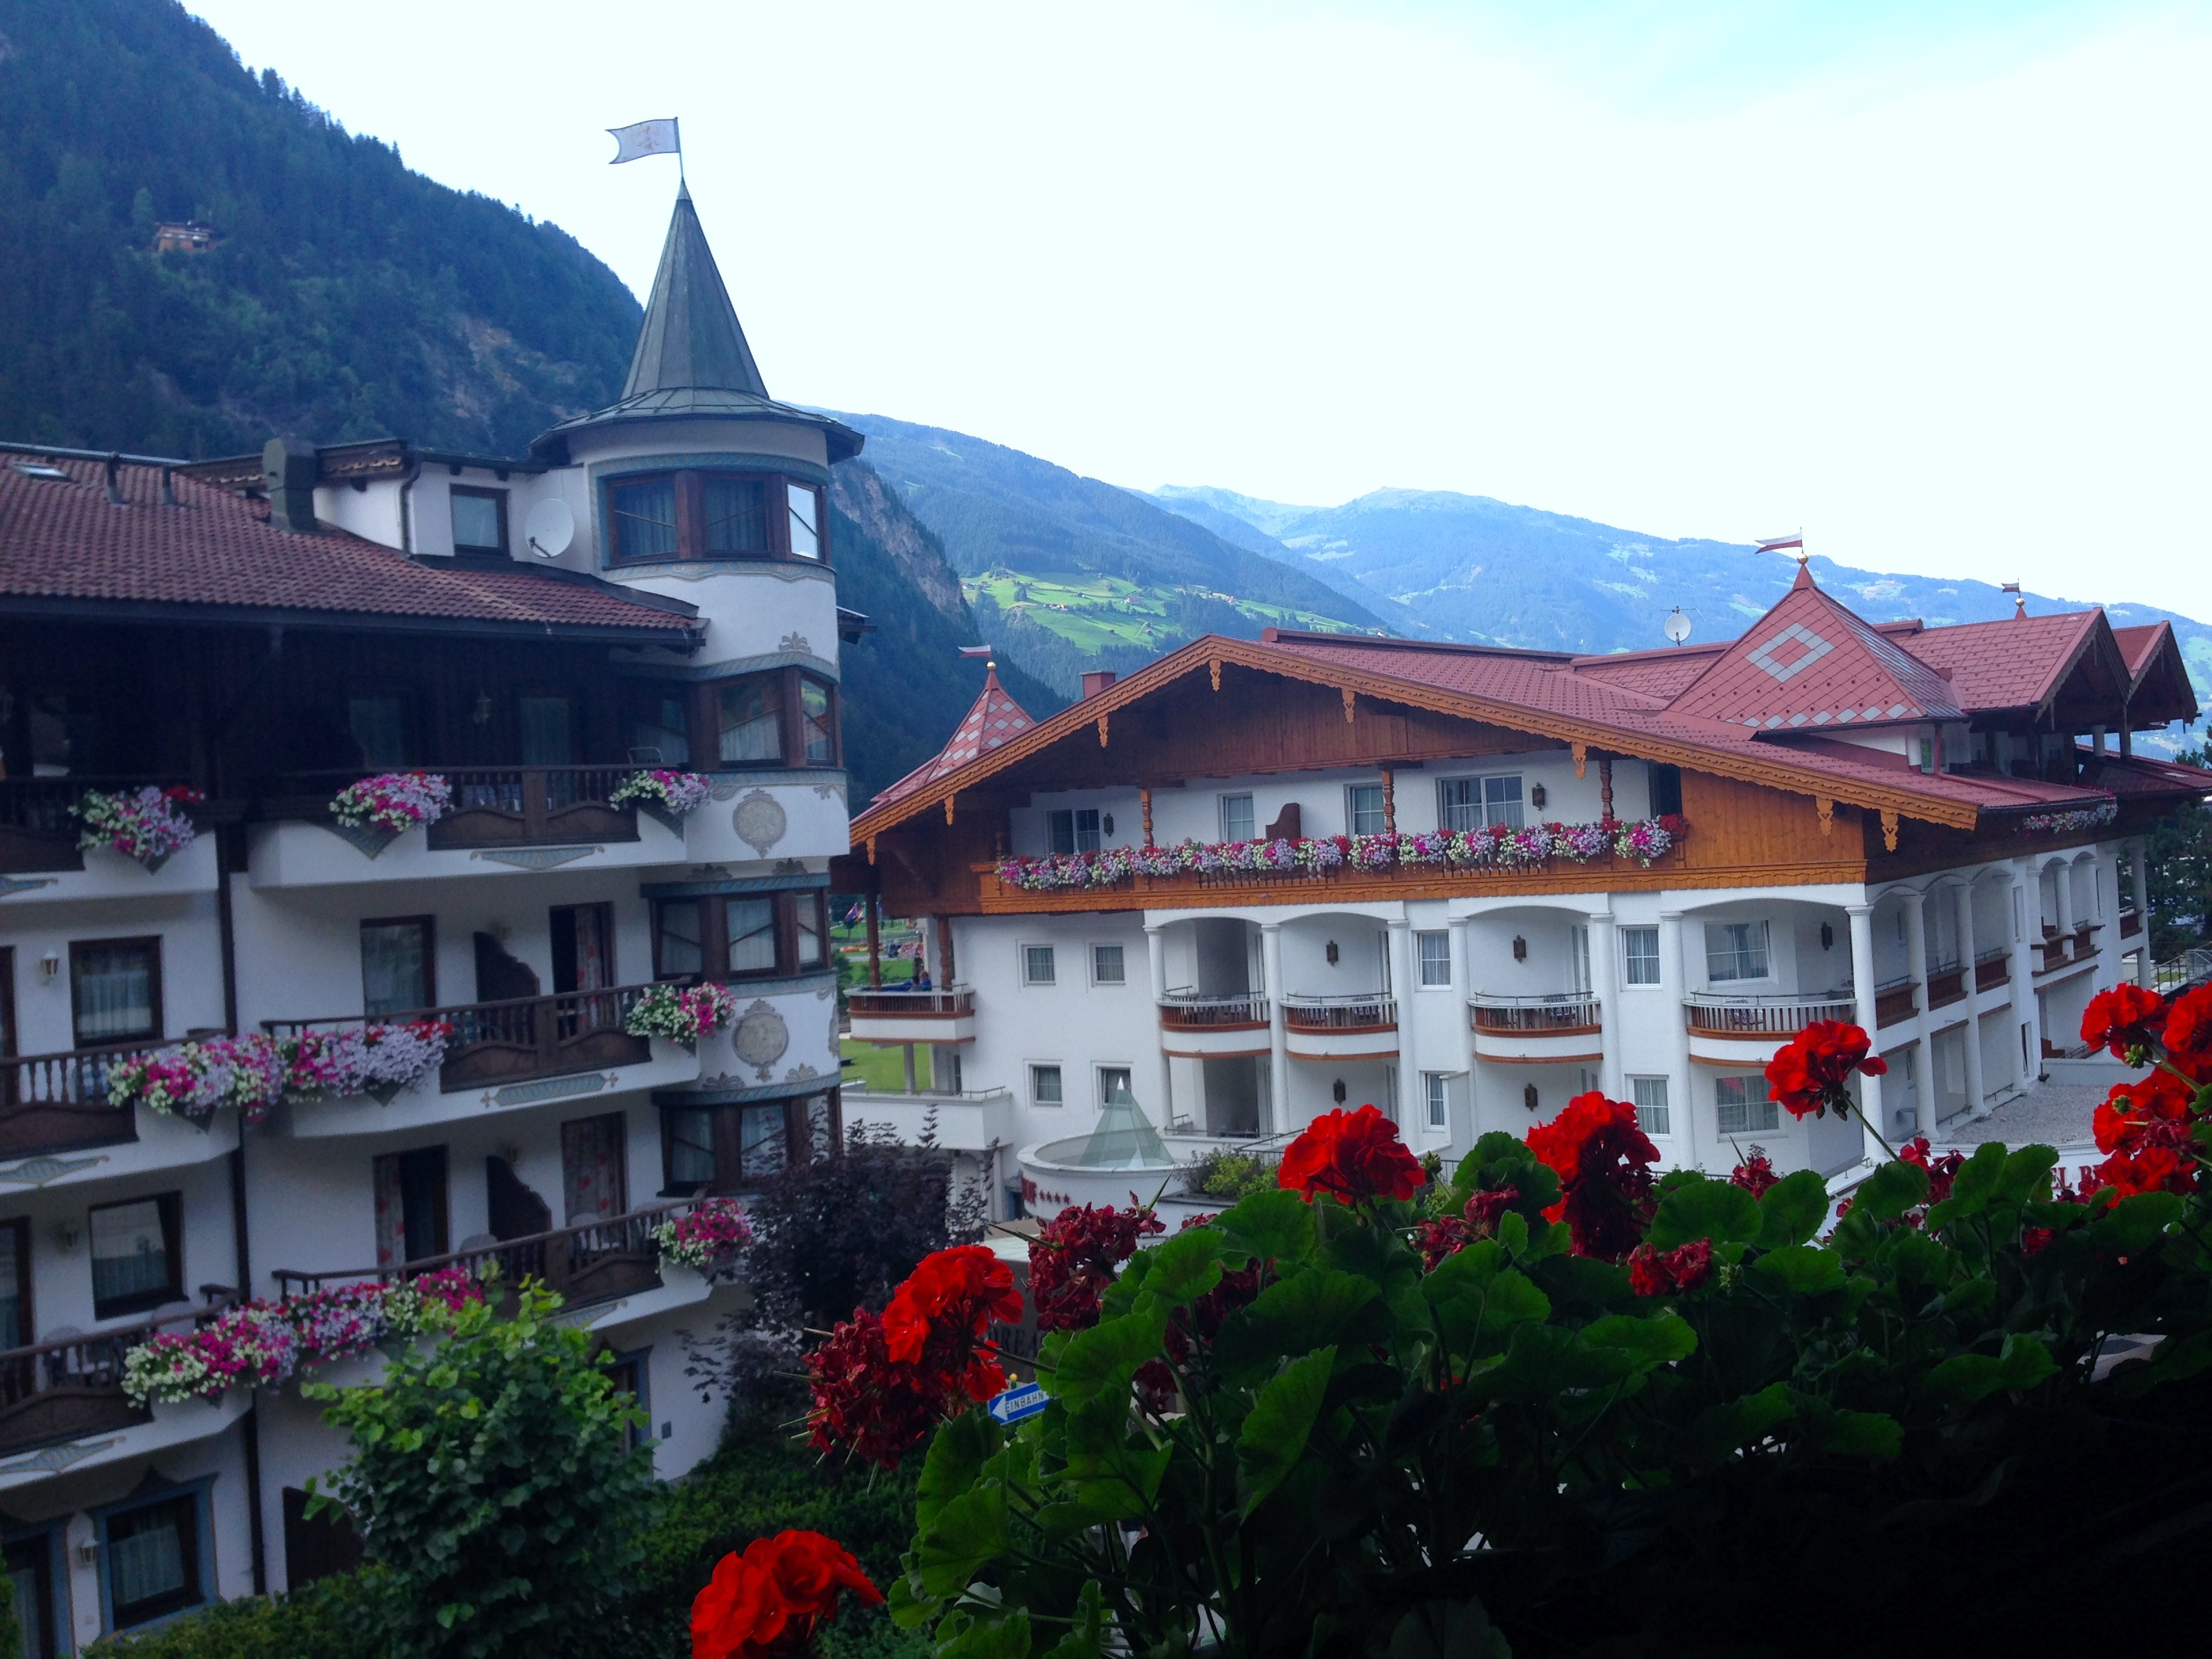 A beautiful view from Hotel Mayrhofen in Zillertal, Austria